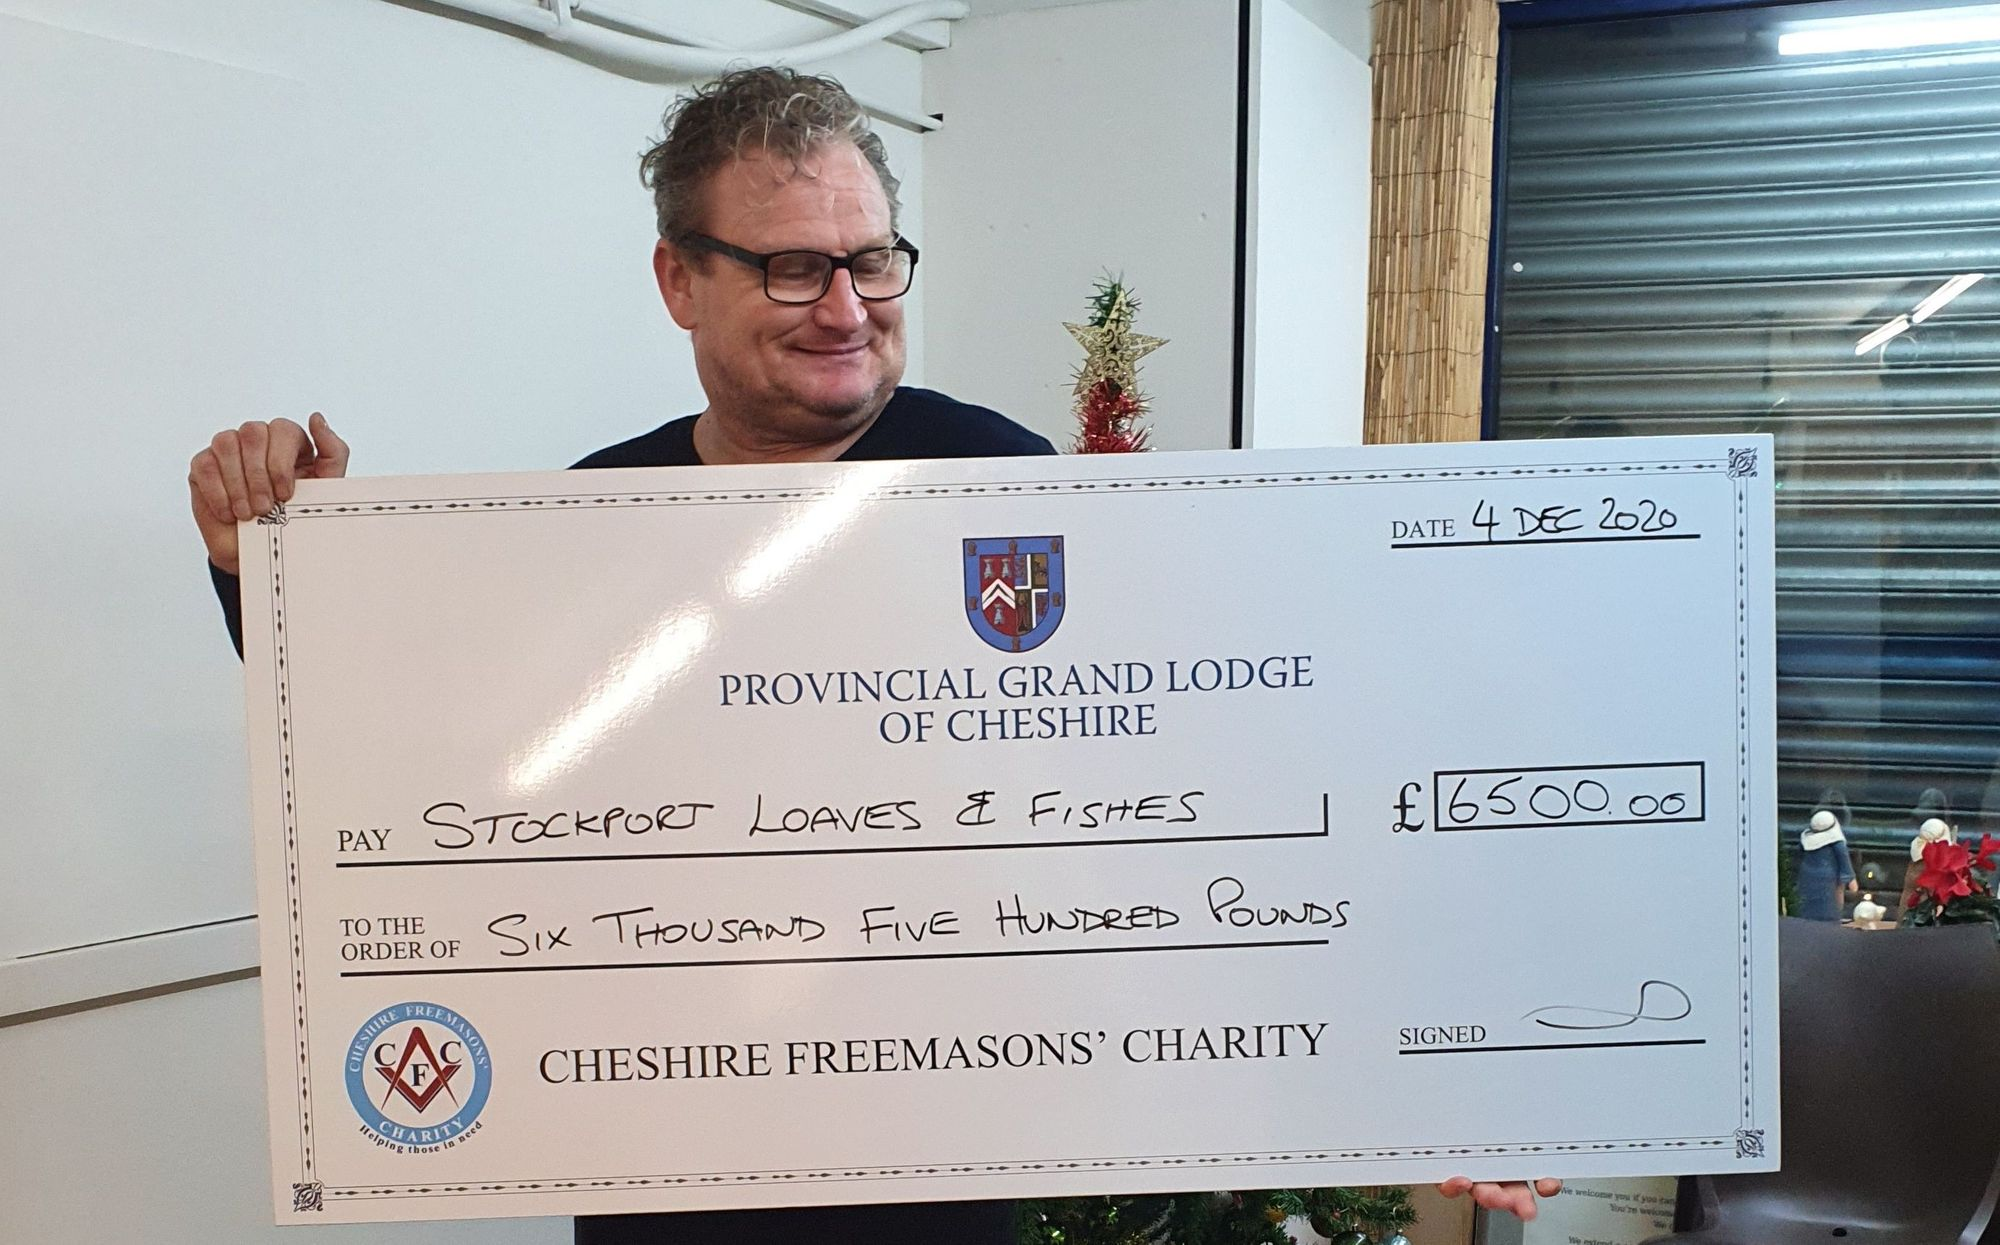 England - Stockport homelessness charity receives £6,500 funding support